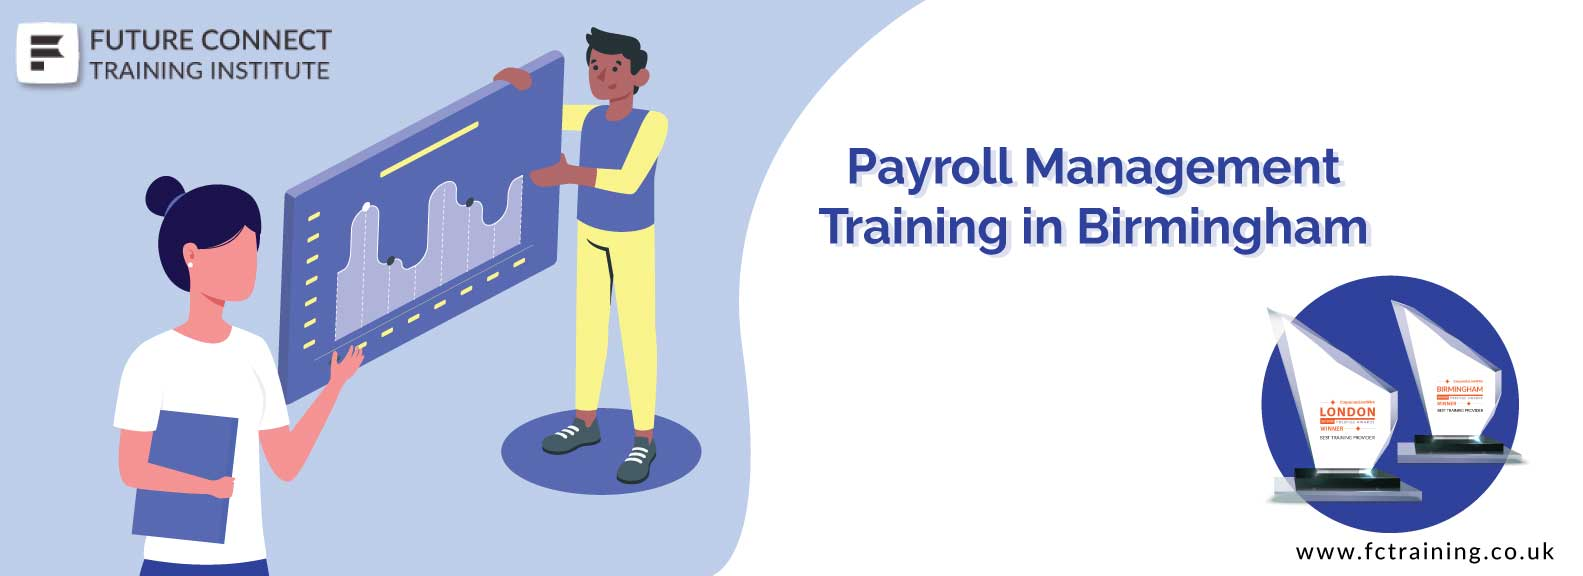 Payroll Management Training in Birmingham